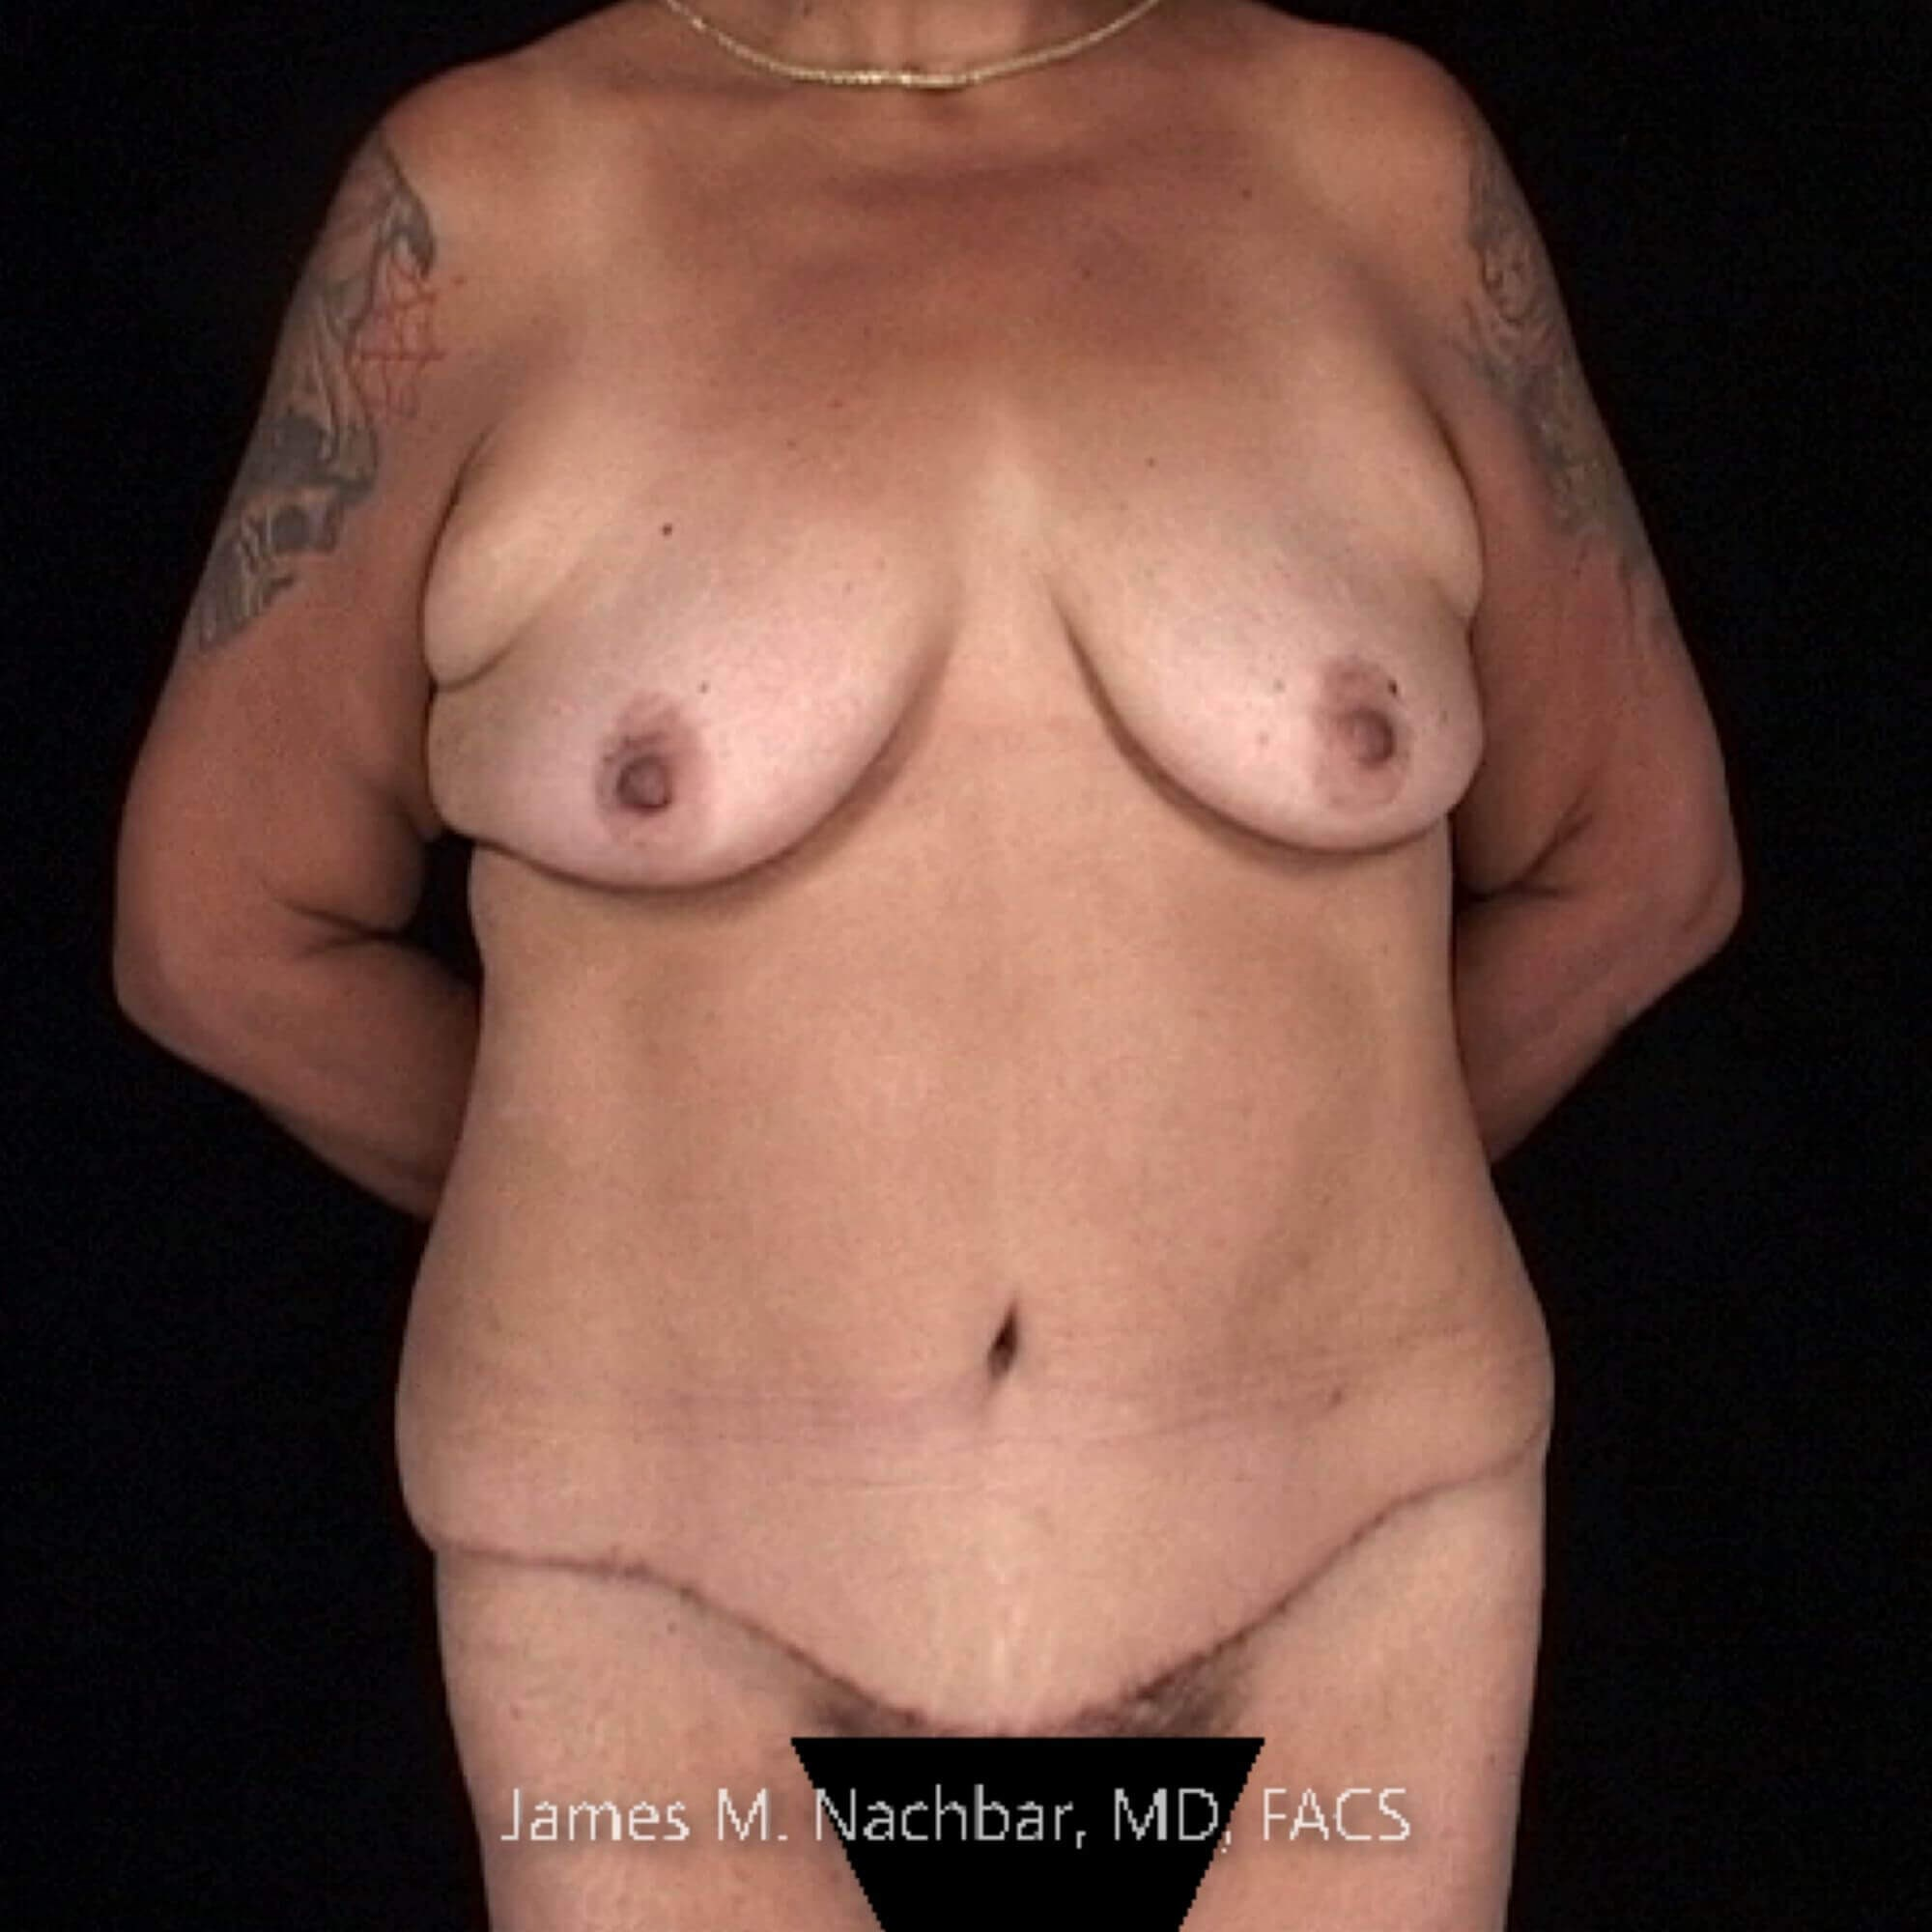 Front View 1 Year After Tummy Tuck